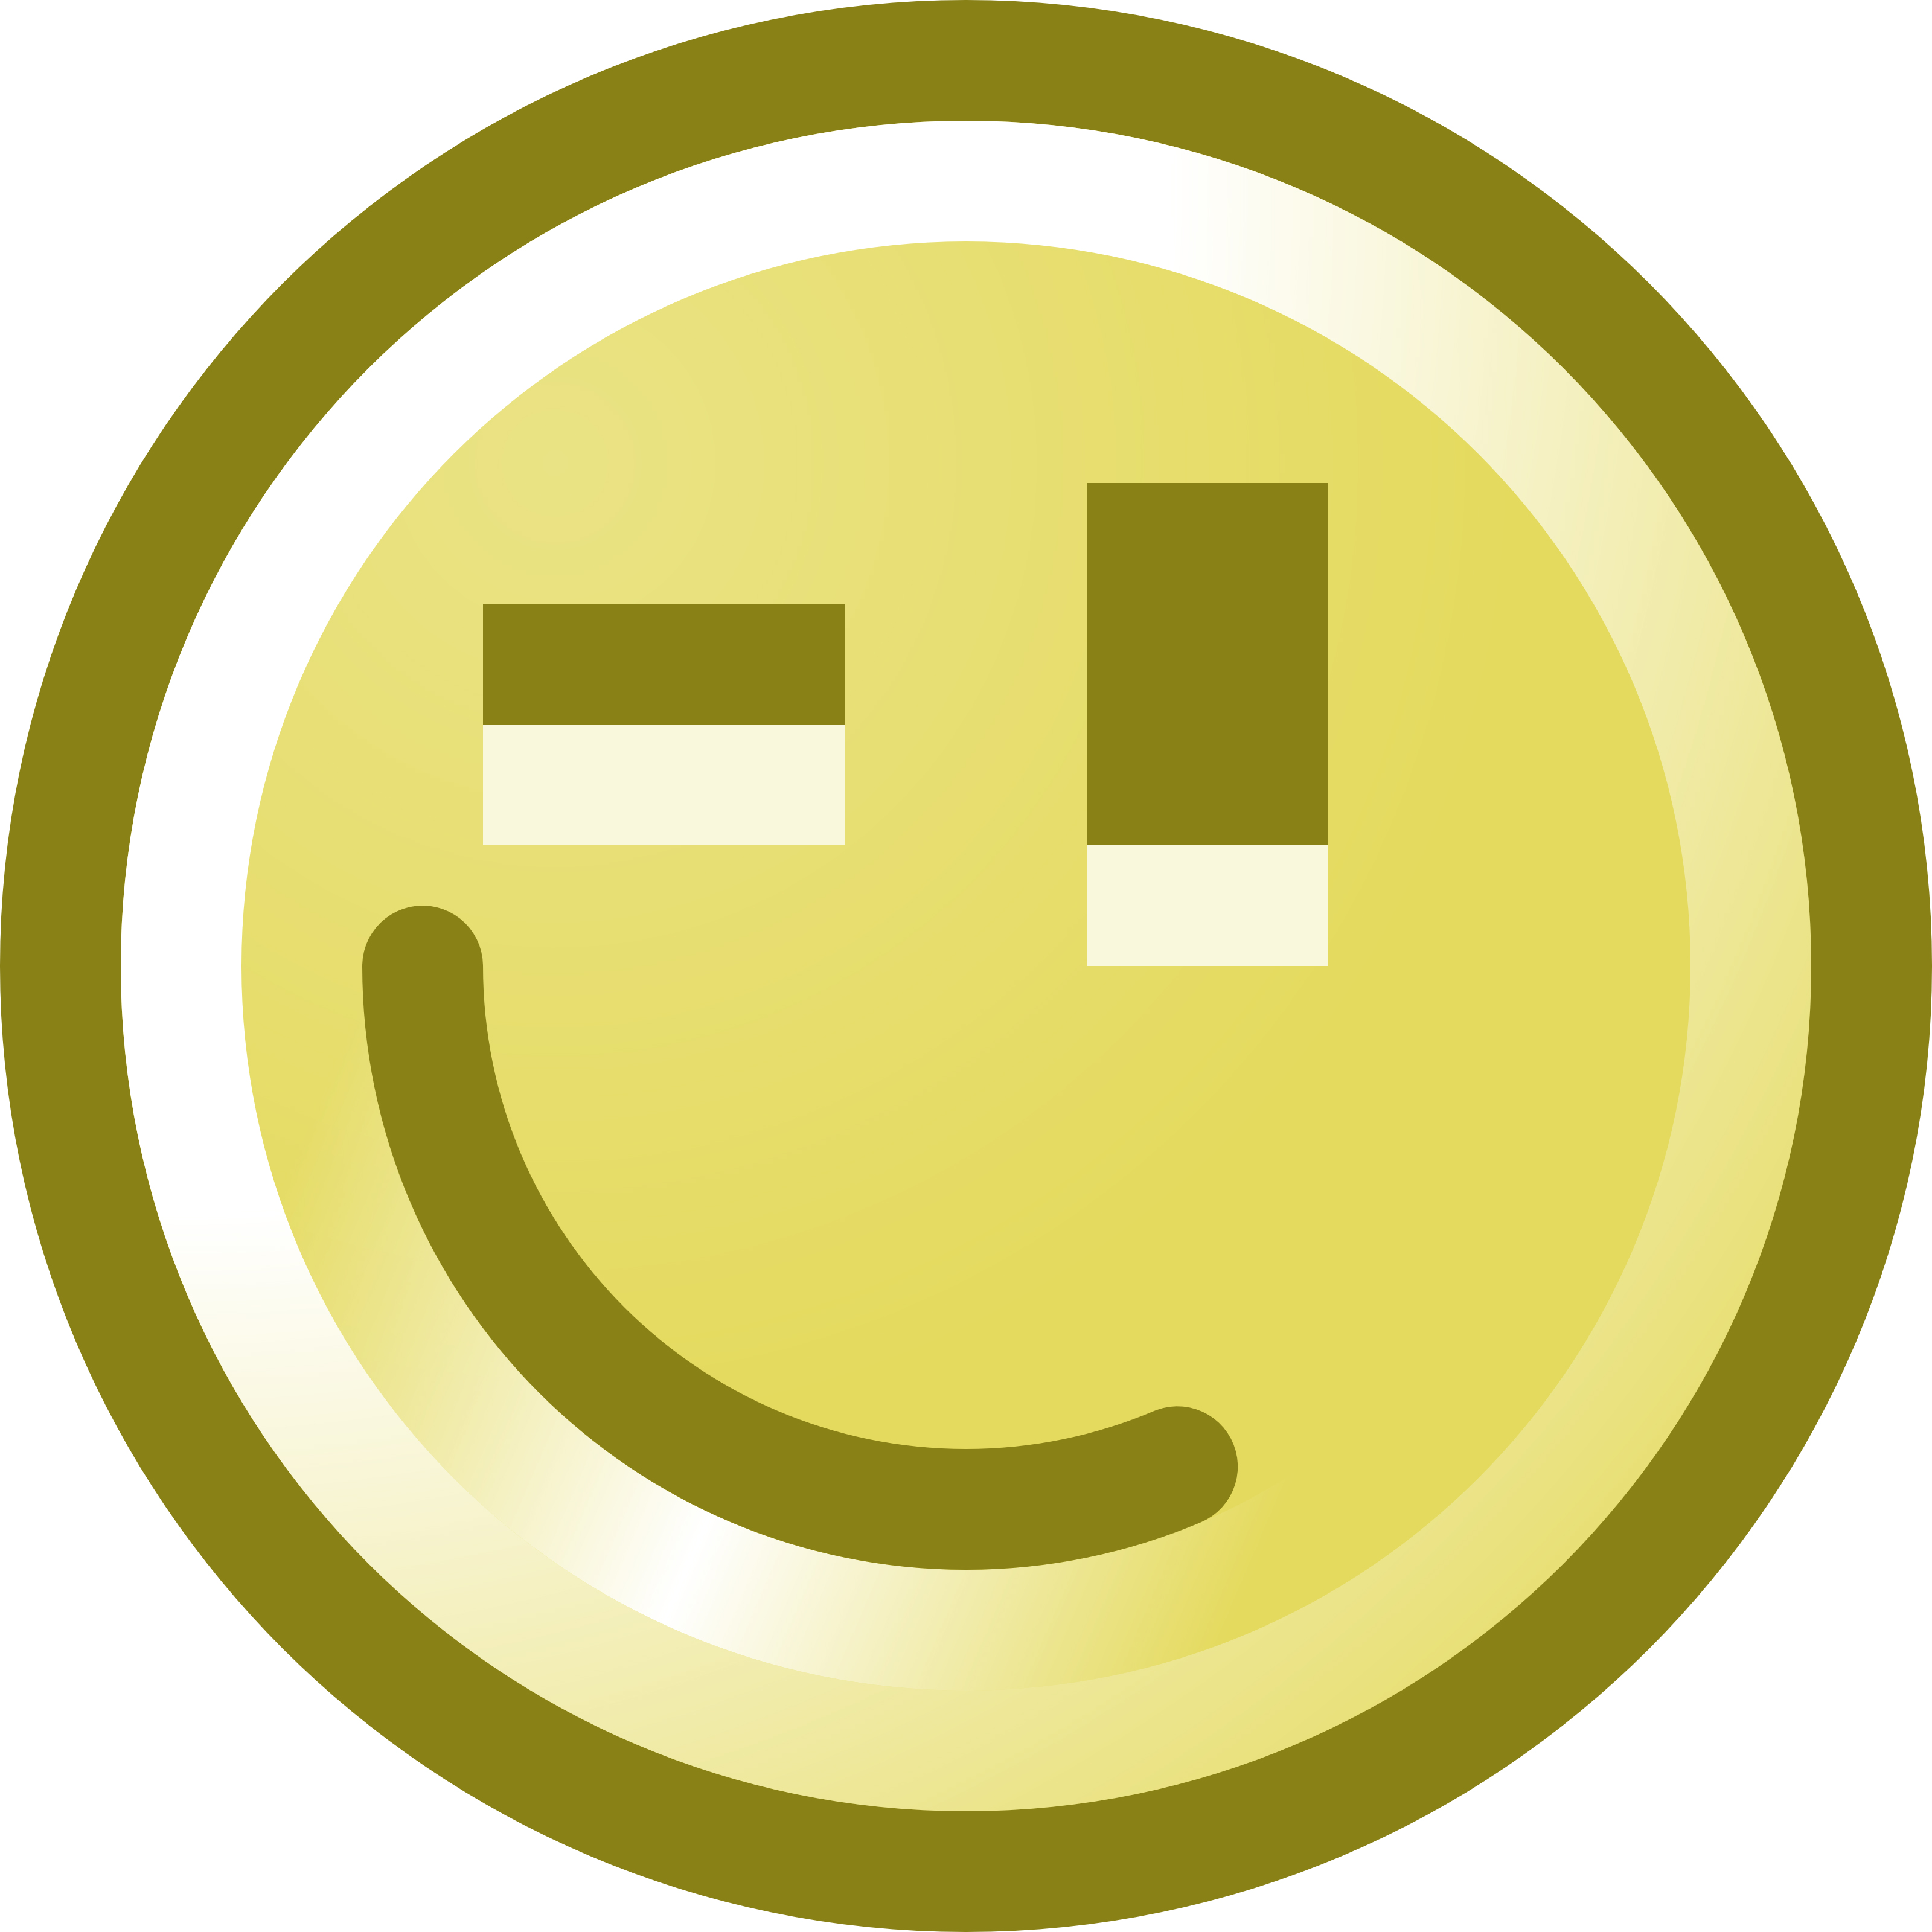 3200x3200 Winking Smiley Face Clip Art Illustration